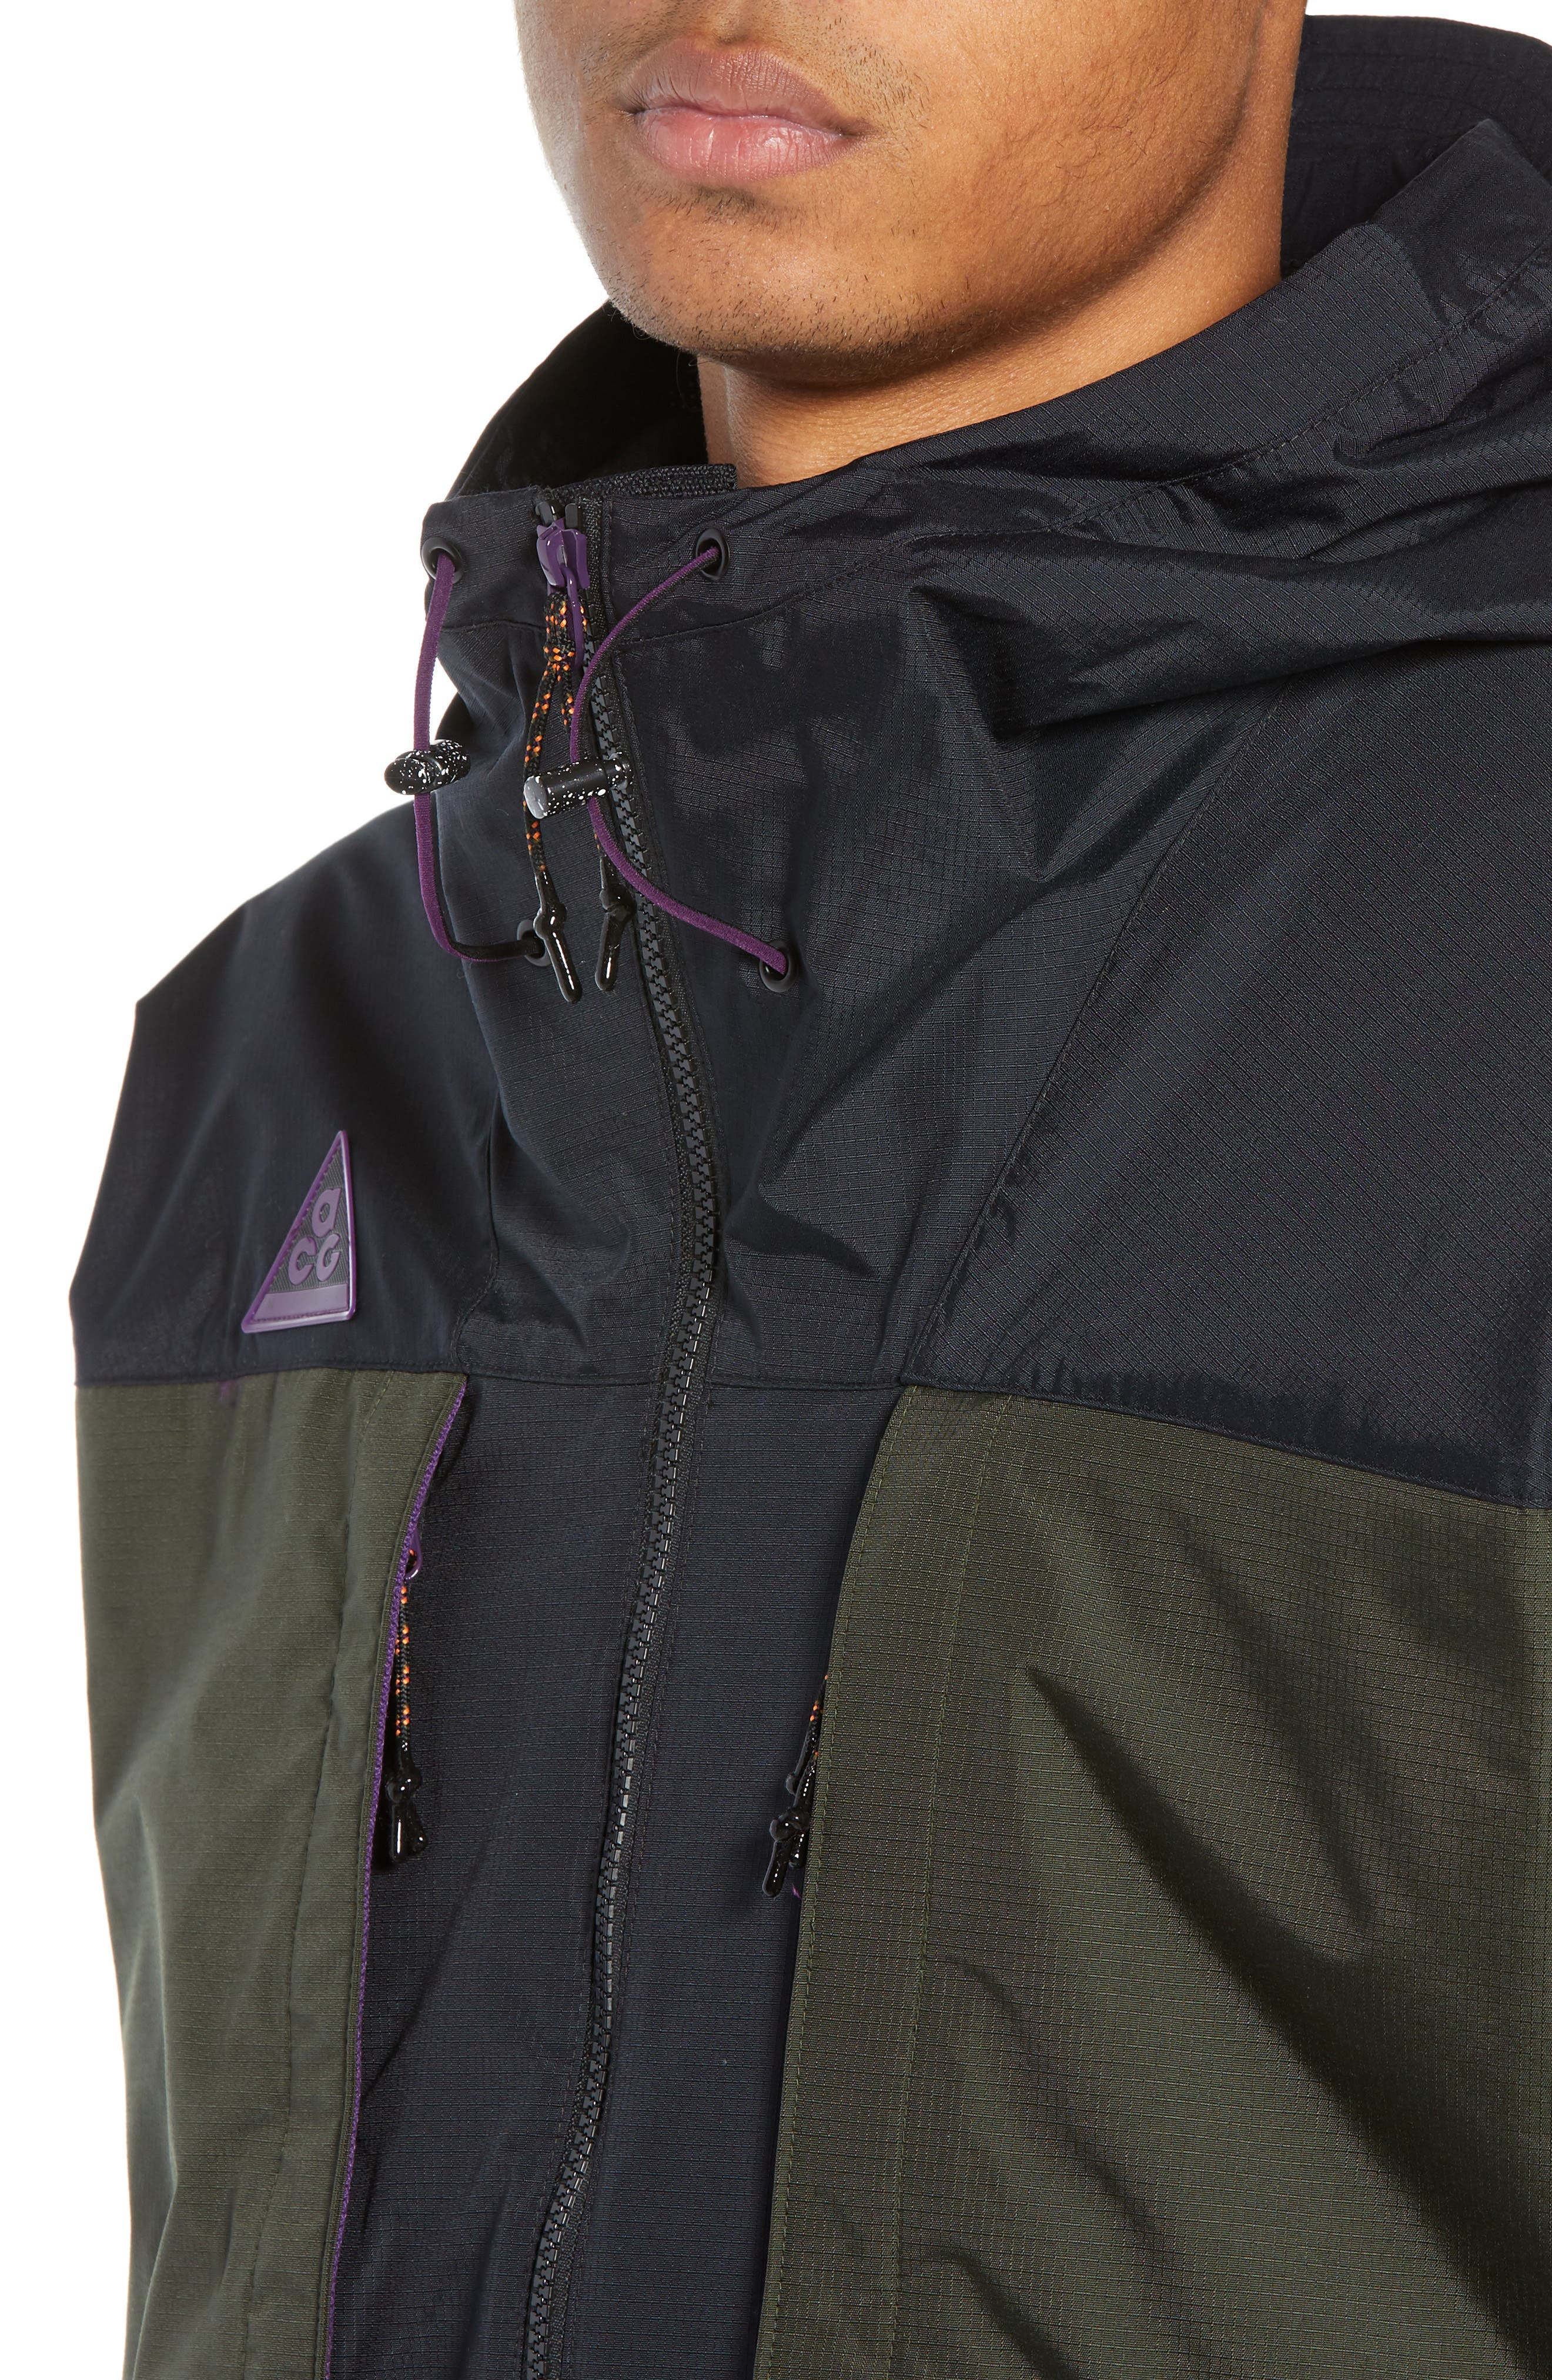 ACG Men's Anorak Jacket,                             Alternate thumbnail 4, color,                             BLACK/ SEQUOIA/ BLACK